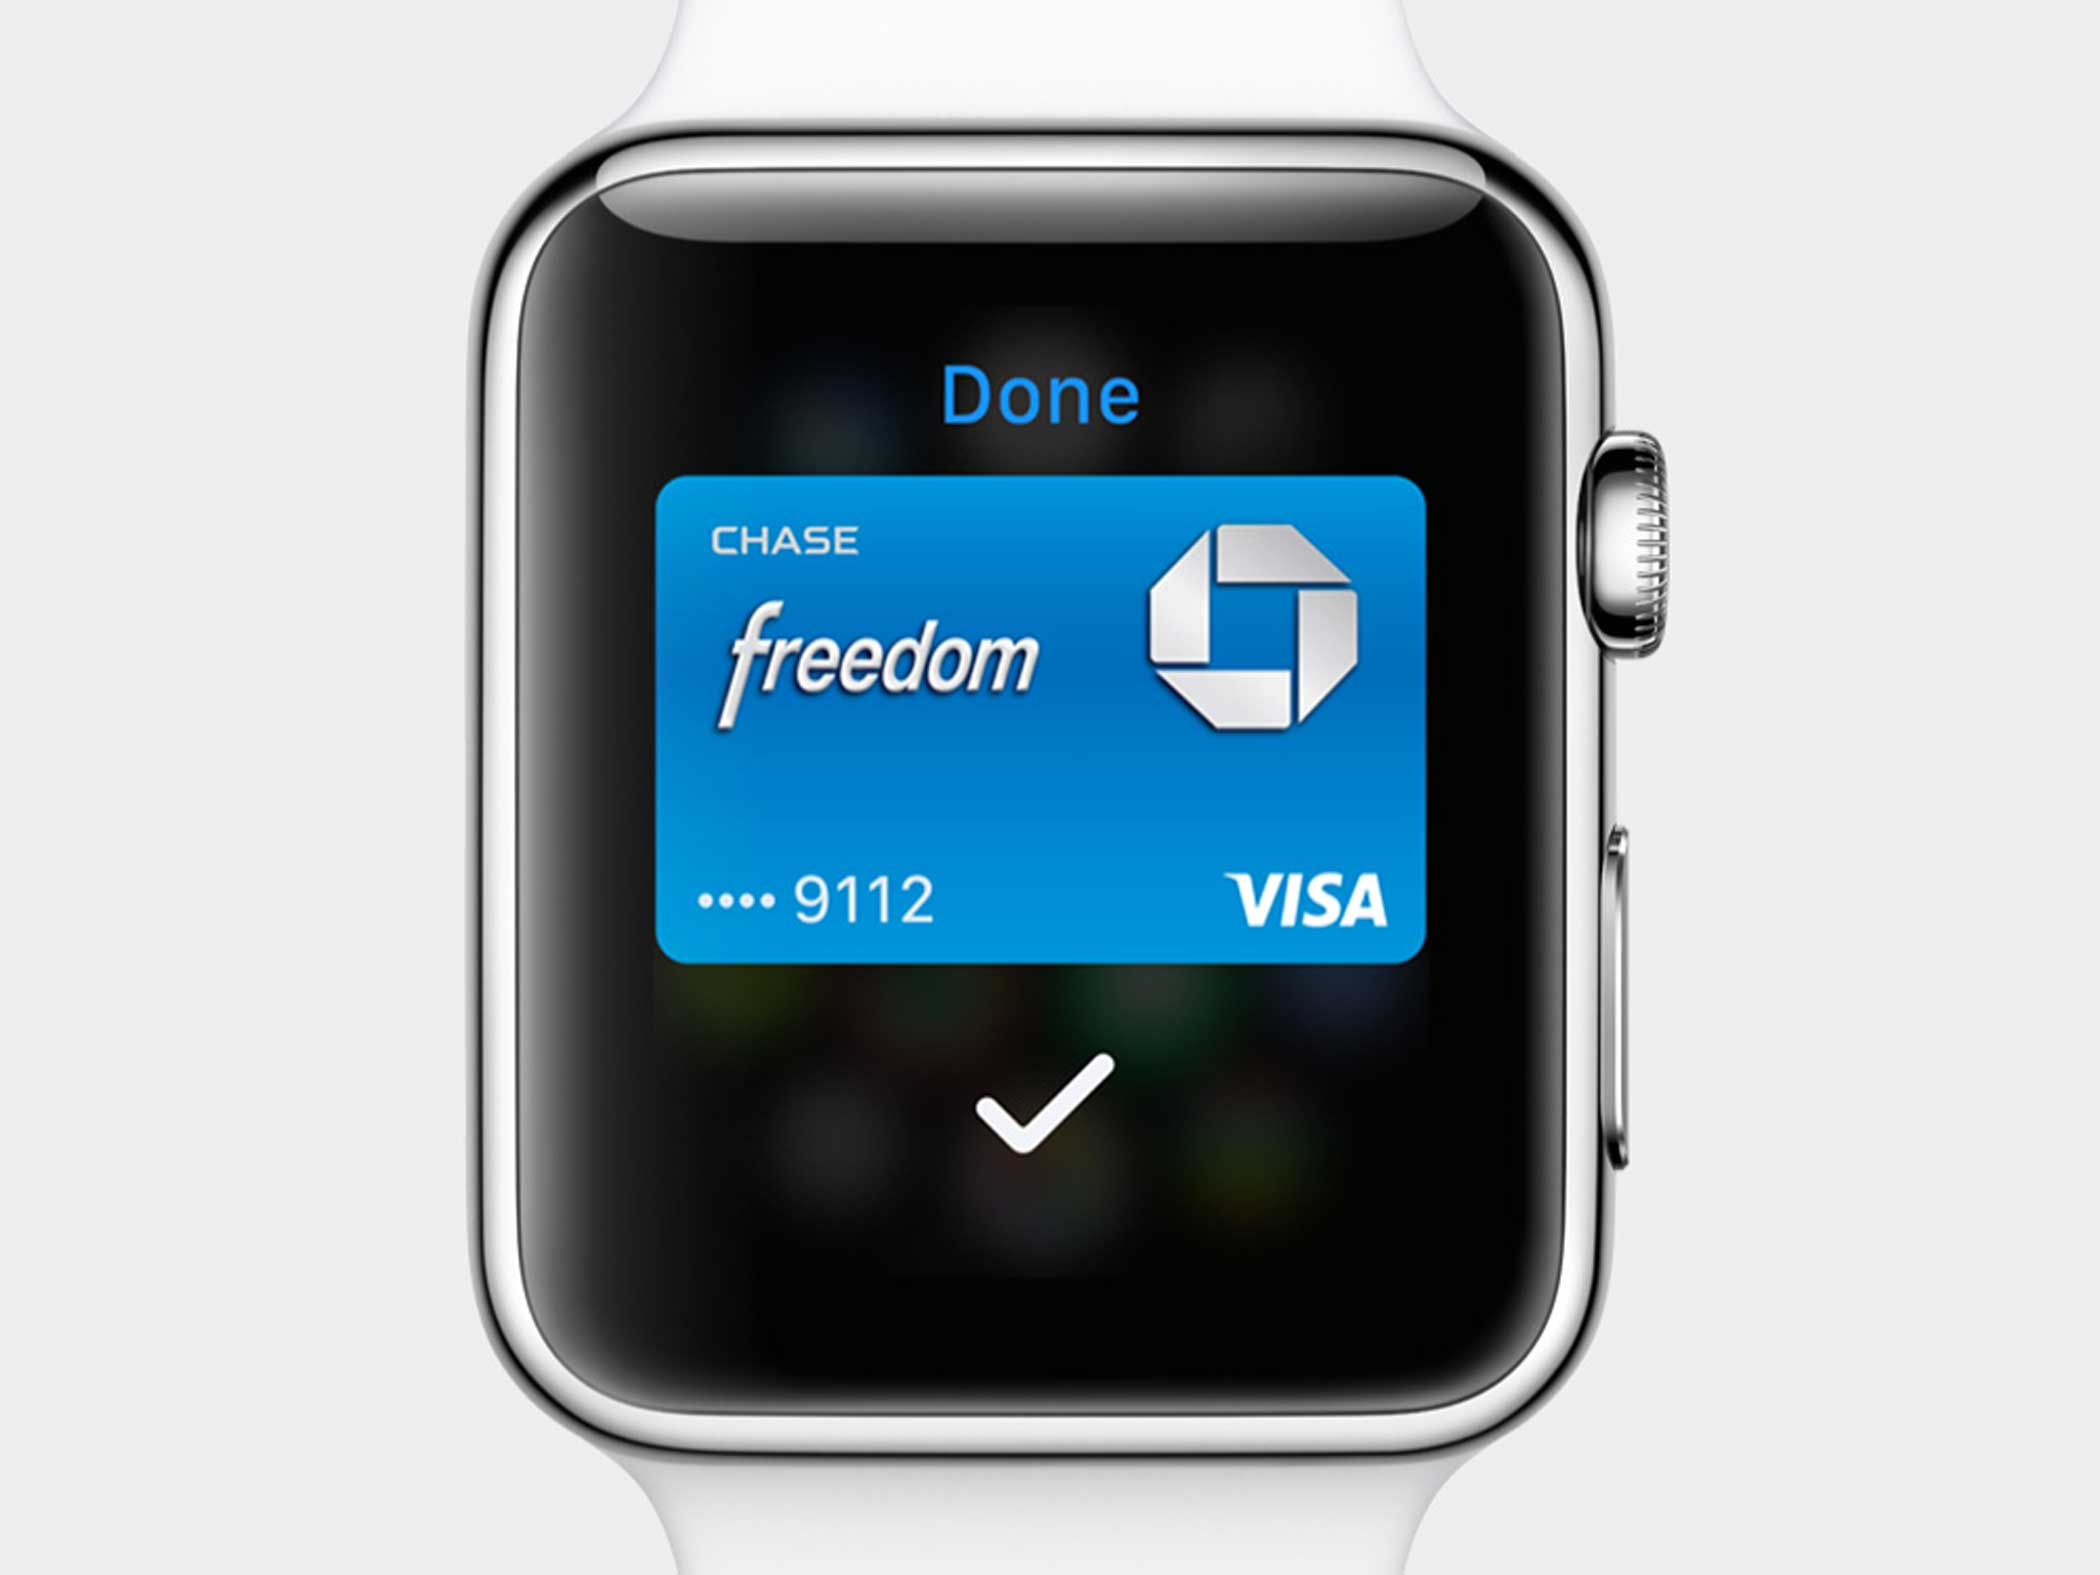 Purchase items using Apple Pay.